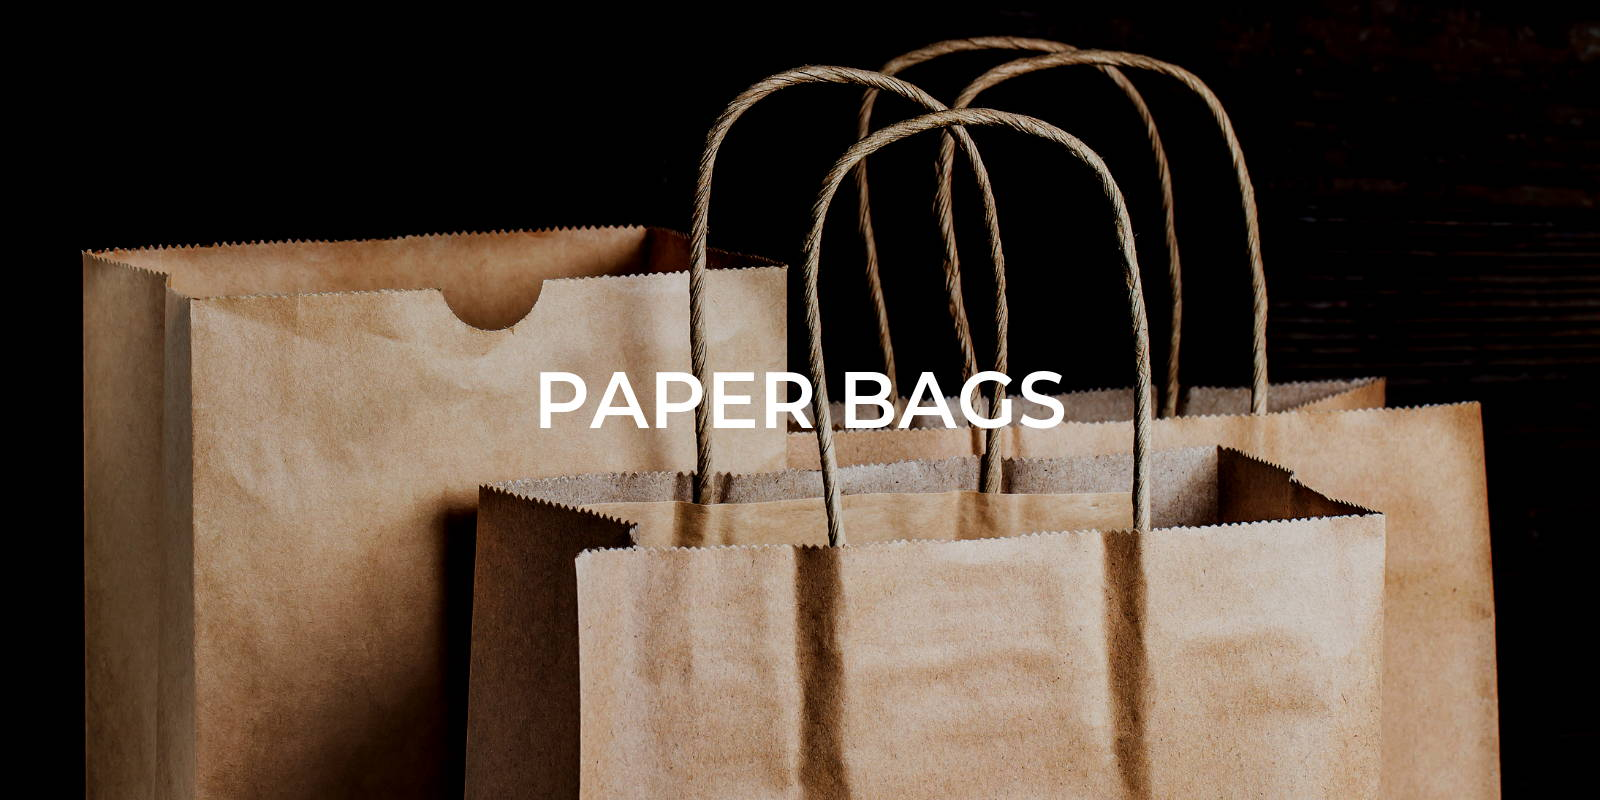 Paper bags have become something of a fashion and status symbol in today's market, due to the amount of time and effort that brands spend designing an attractive paper bag for their wares. Hotpack Global provide with high quality paper bags that advertise the company's brand, customers are providing a form of free advertising and endorsement.   Our paper bags also offer many eco-friendly benefits to those who use them. They are both recyclable and biodegradable. In fact, it actually requires less energy for paper bags to be recycled than it does for plastic. It gives a great choice as they pose less of a threat to the environment and wildlife.  By choosing our high quality paper bags for your coffee, tea, snacks, nuts, cookies, candy and spices, we ensure it with high quality and aesthetic appeal which is sure to be impressed and delighted.   Features and Usage   Sturdy handles make for easy carrying (Flat and Twisted Handle) Perfect for groceries, bottles, easy food takeaway or any retail items Made without any harmful chemicals or bleaches Available in various sizes to fit a multitude of needs Best for securing product packaging and transportation  More visually appealing than plastic Providing any need for Customisation